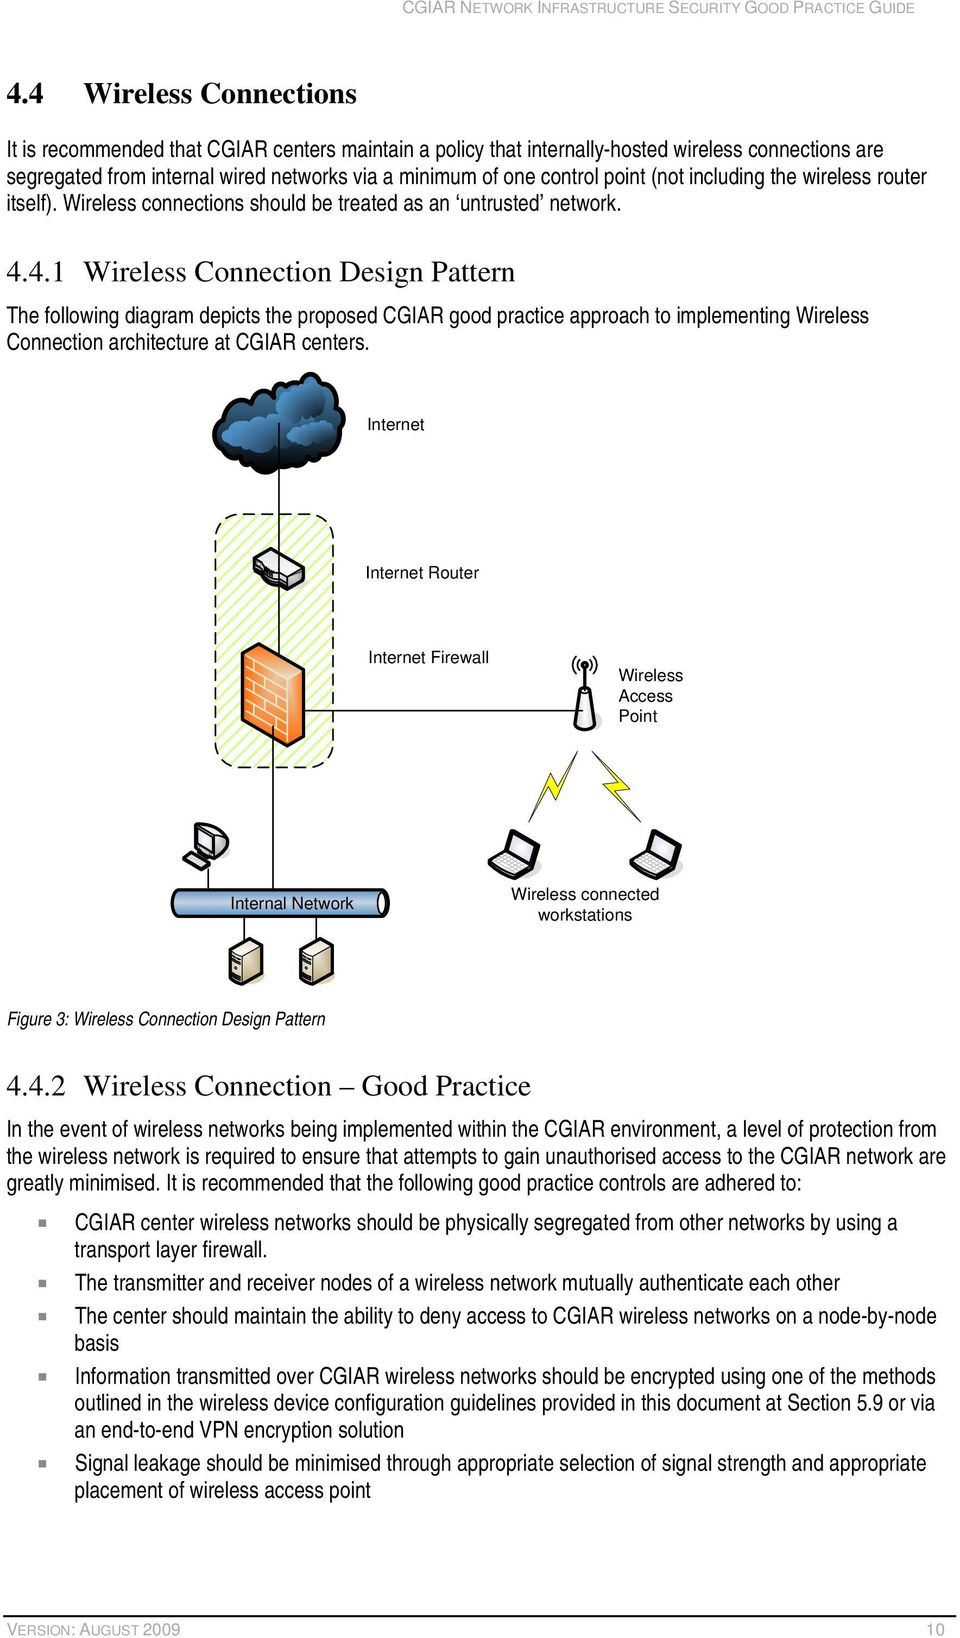 4.1 Wireless Connection Design Pattern The following diagram depicts the proposed CGIAR good practice approach to implementing Wireless Connection architecture at CGIAR centers.